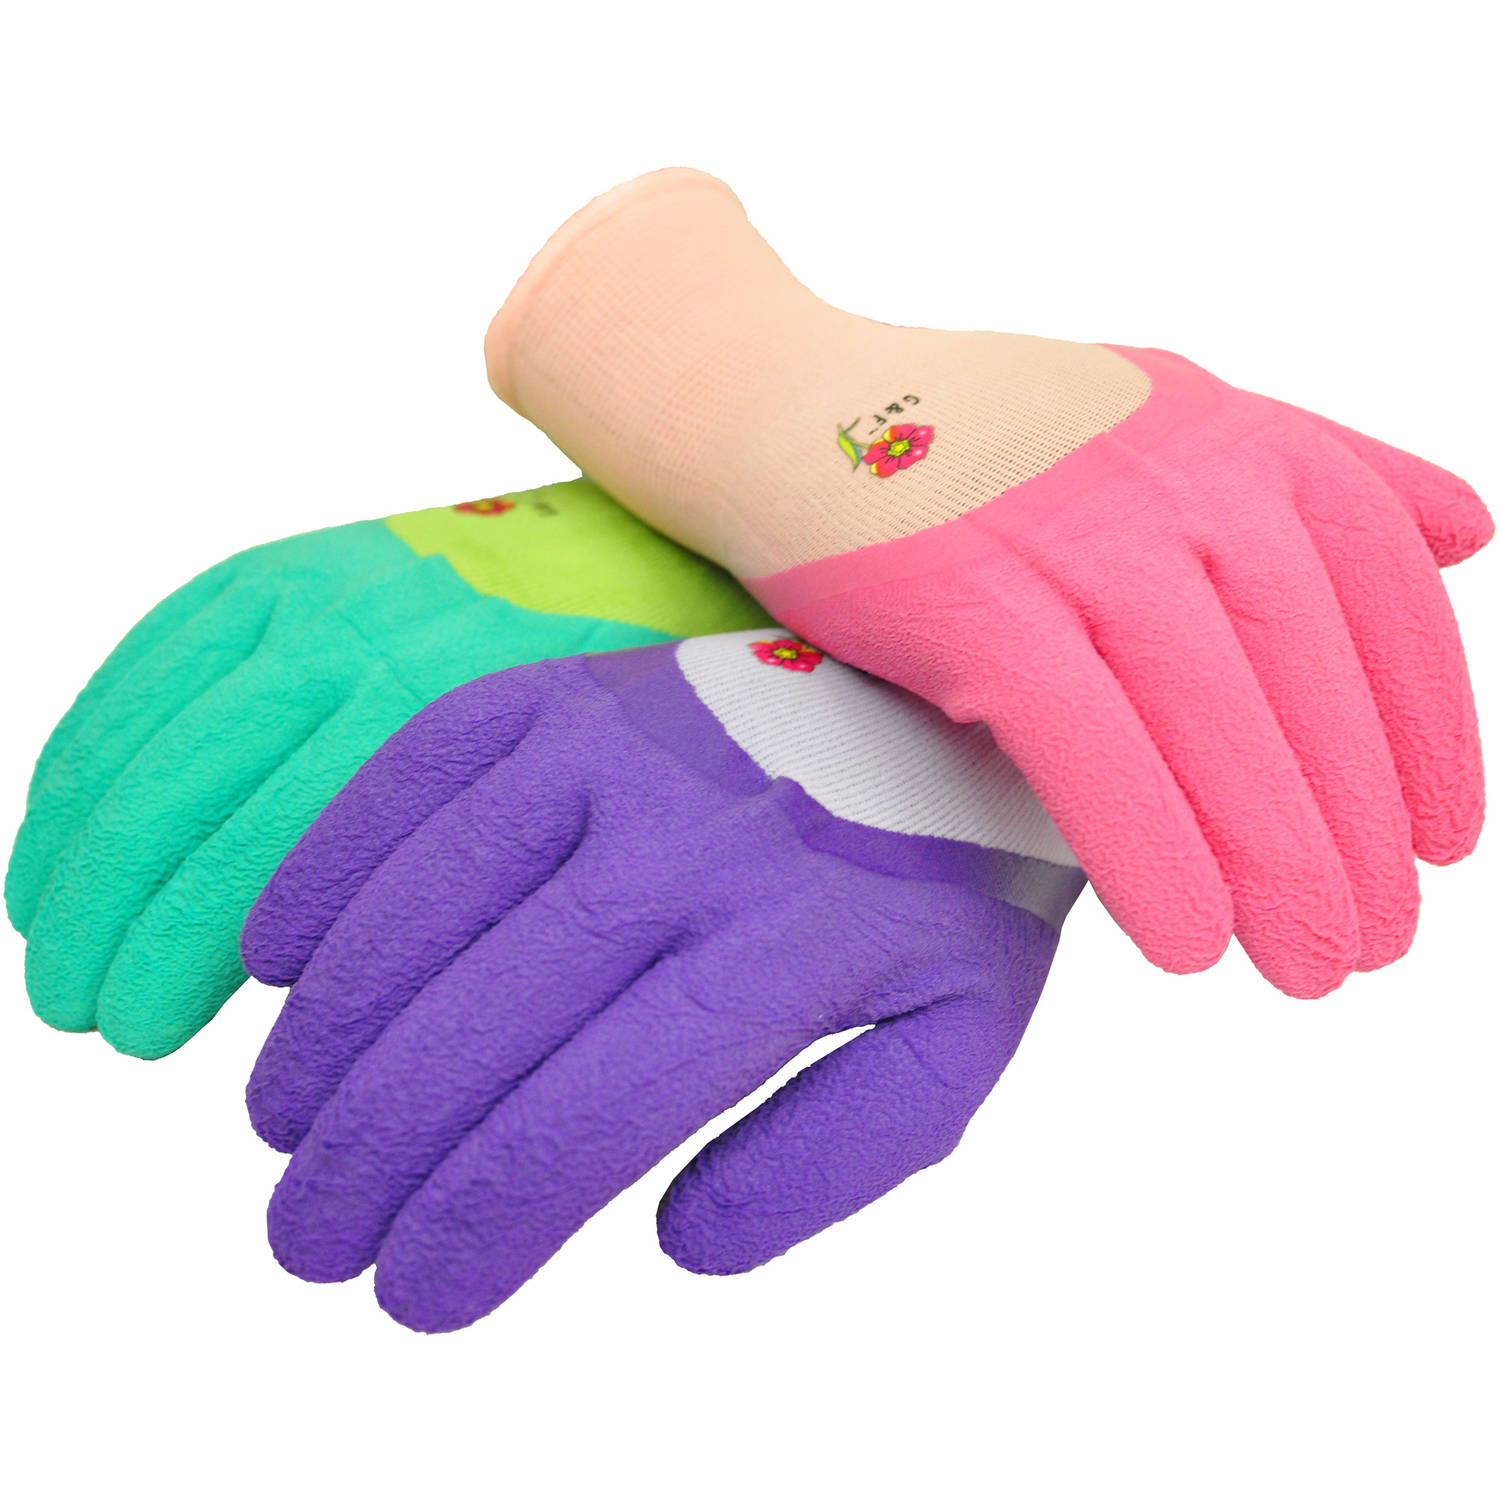 G & F Women Garden Gloves with Micro-foam Nylon Latex Coating and Texture Grip, 3 Pairs